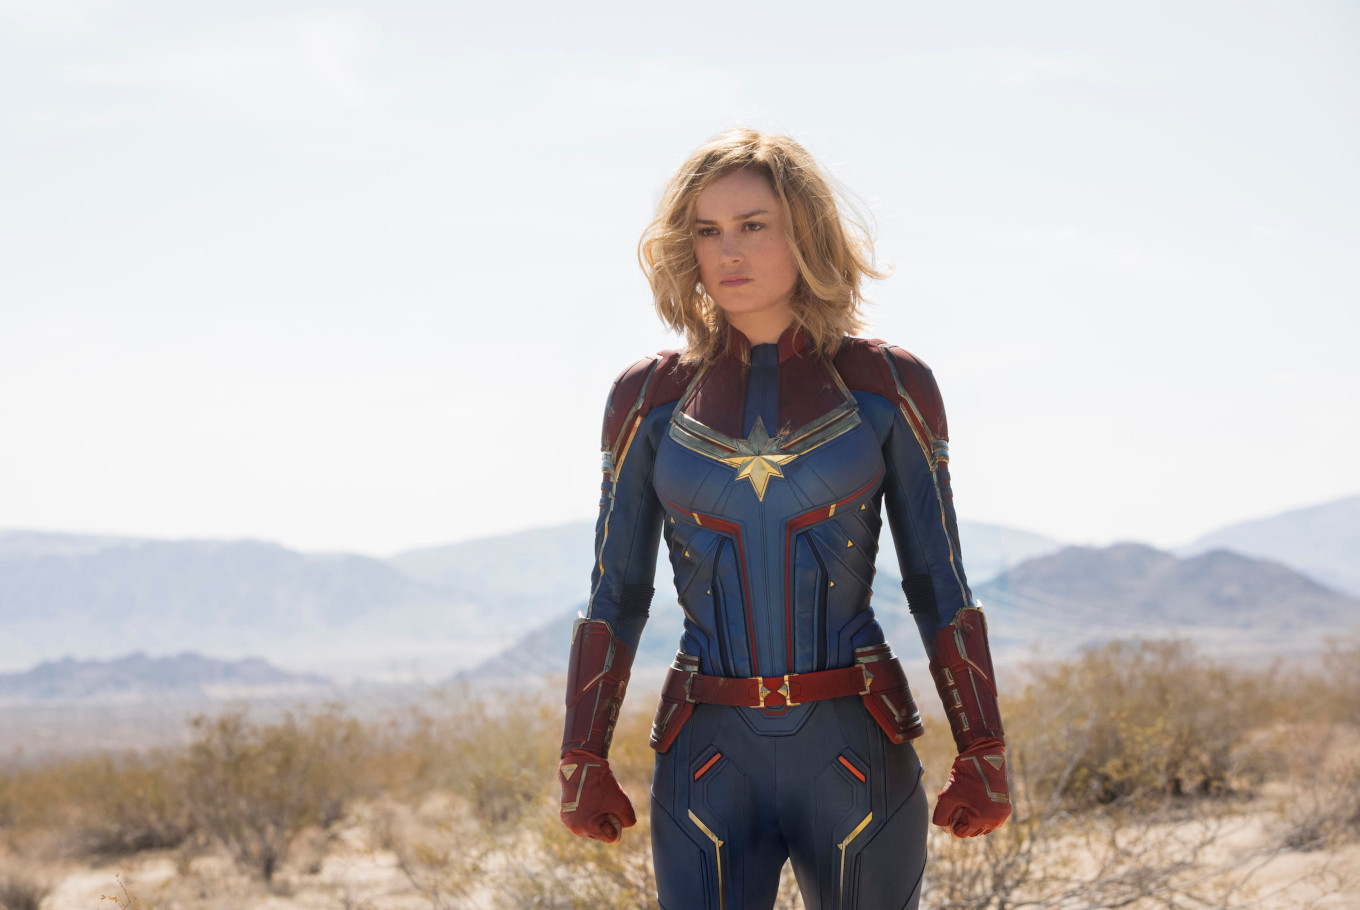 'Captain Marvel' soars to rarefied heights in North American opening